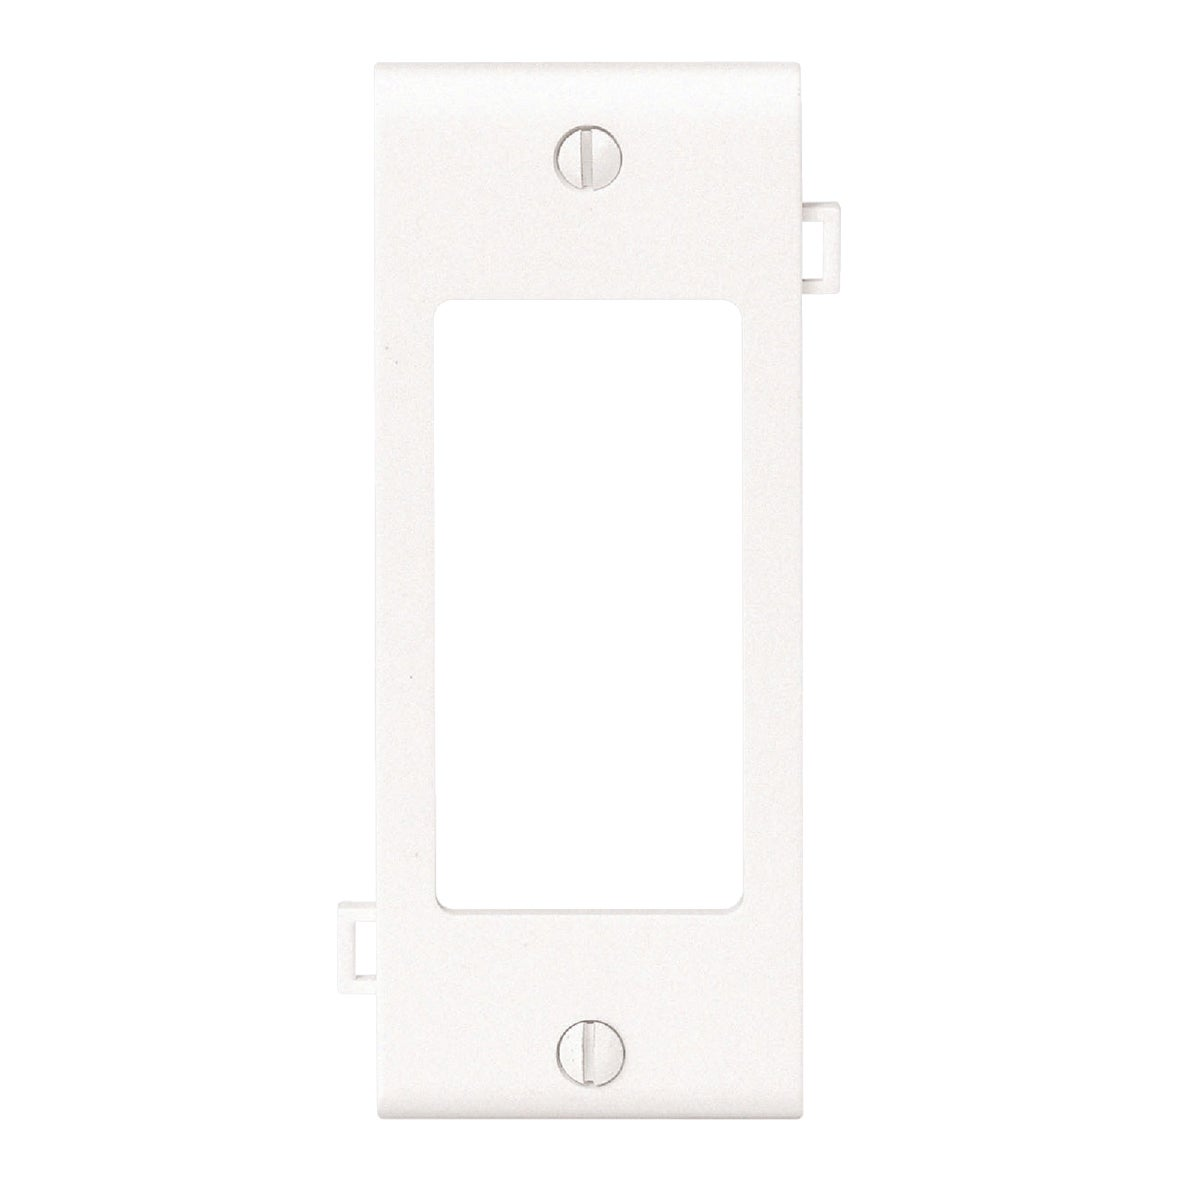 WHT GFI CENTER PLATE - 905-PSC26W by Leviton Mfg Co